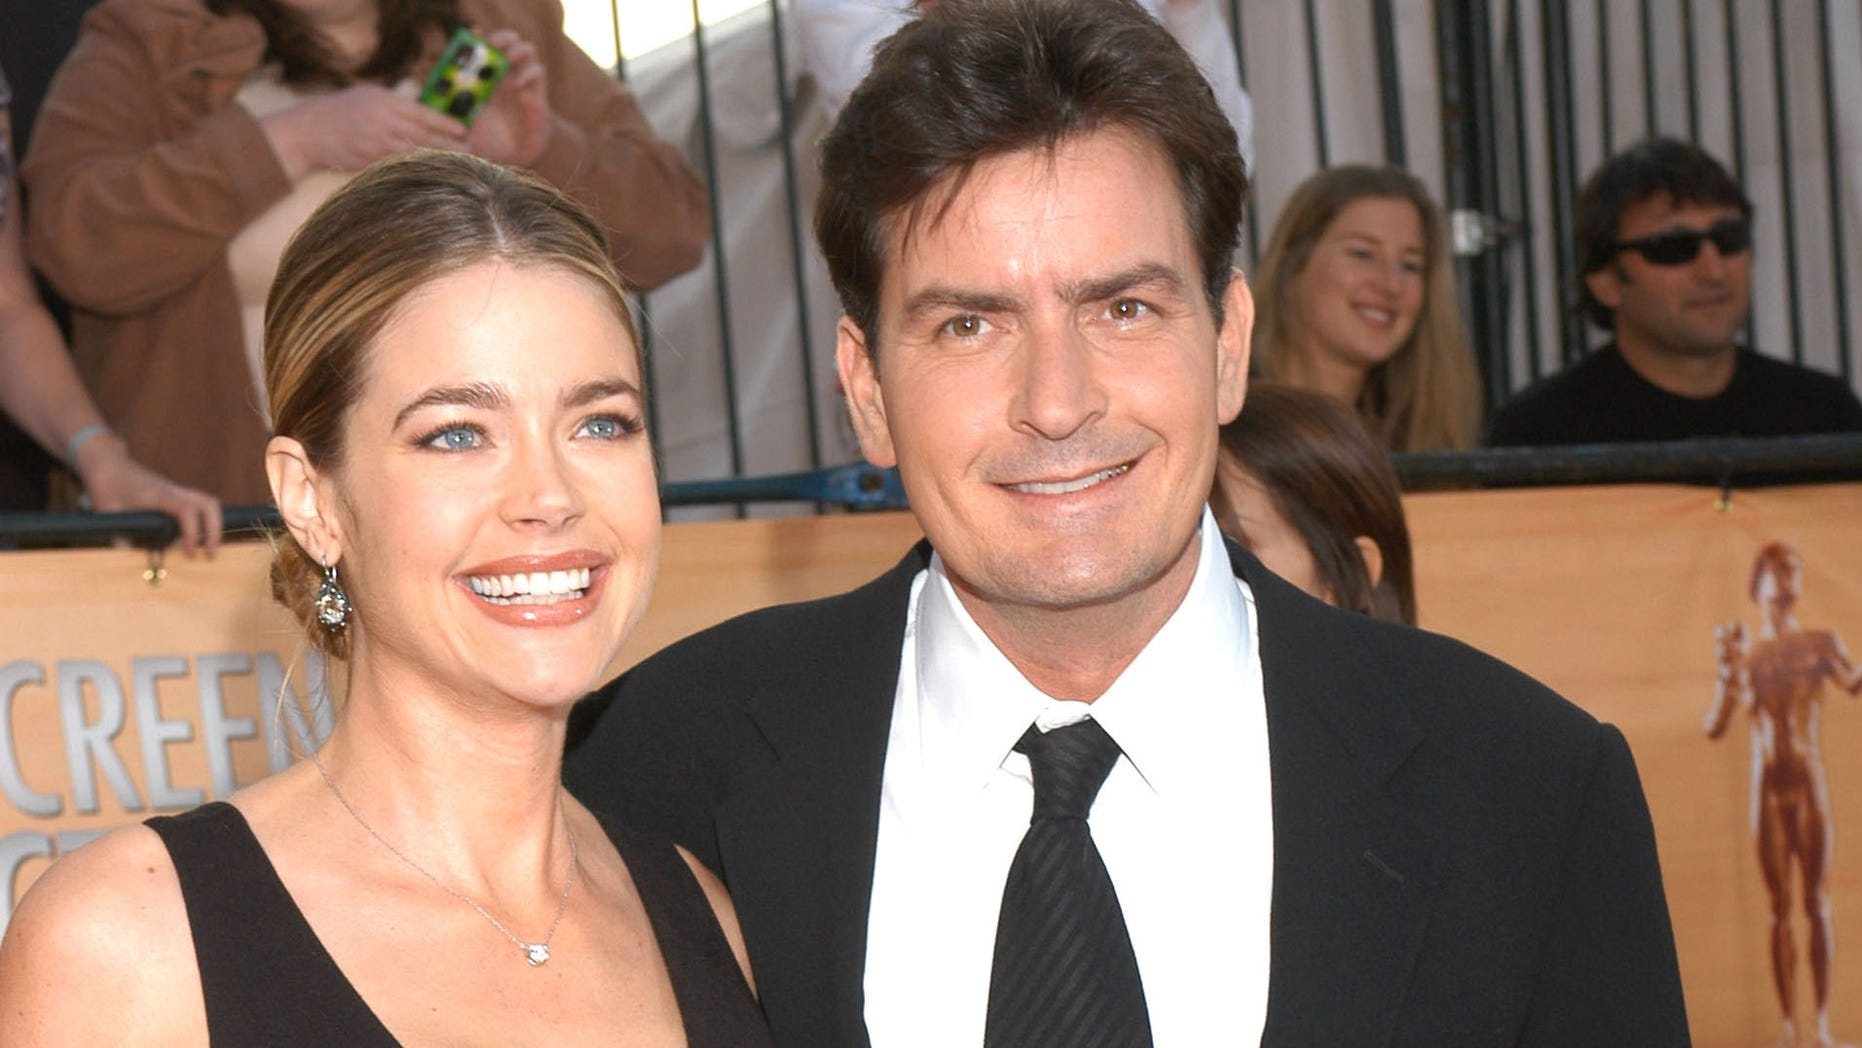 Denise Richards and Charlie Sheen in a February, 2005 file photo.